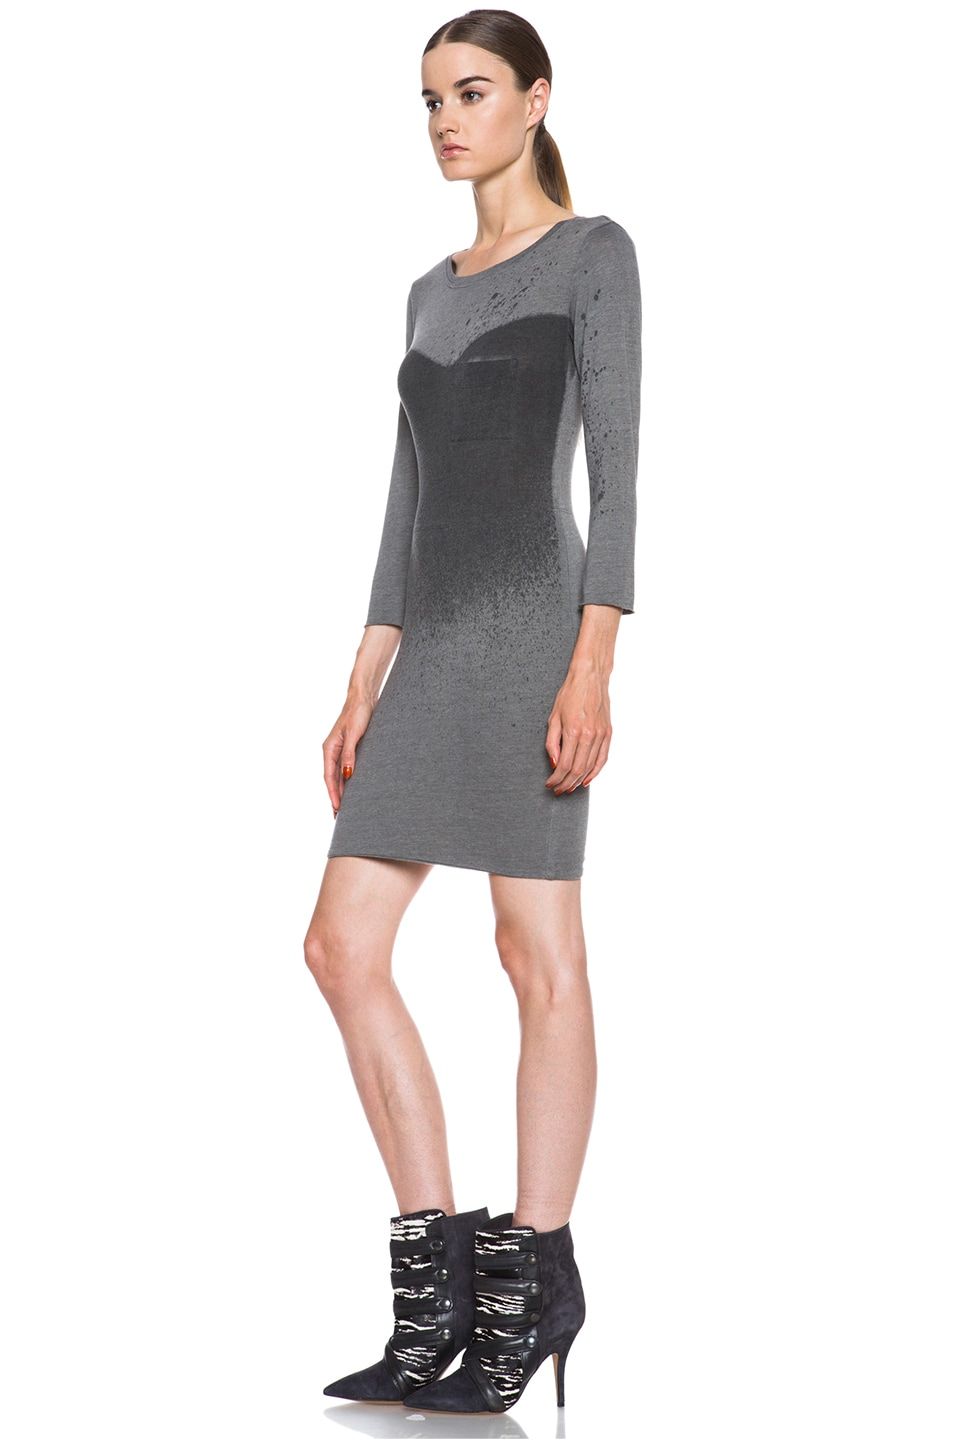 Image 2 of Raquel Allegra Deconstructed Jersey Dress in Stardust Ash Grey